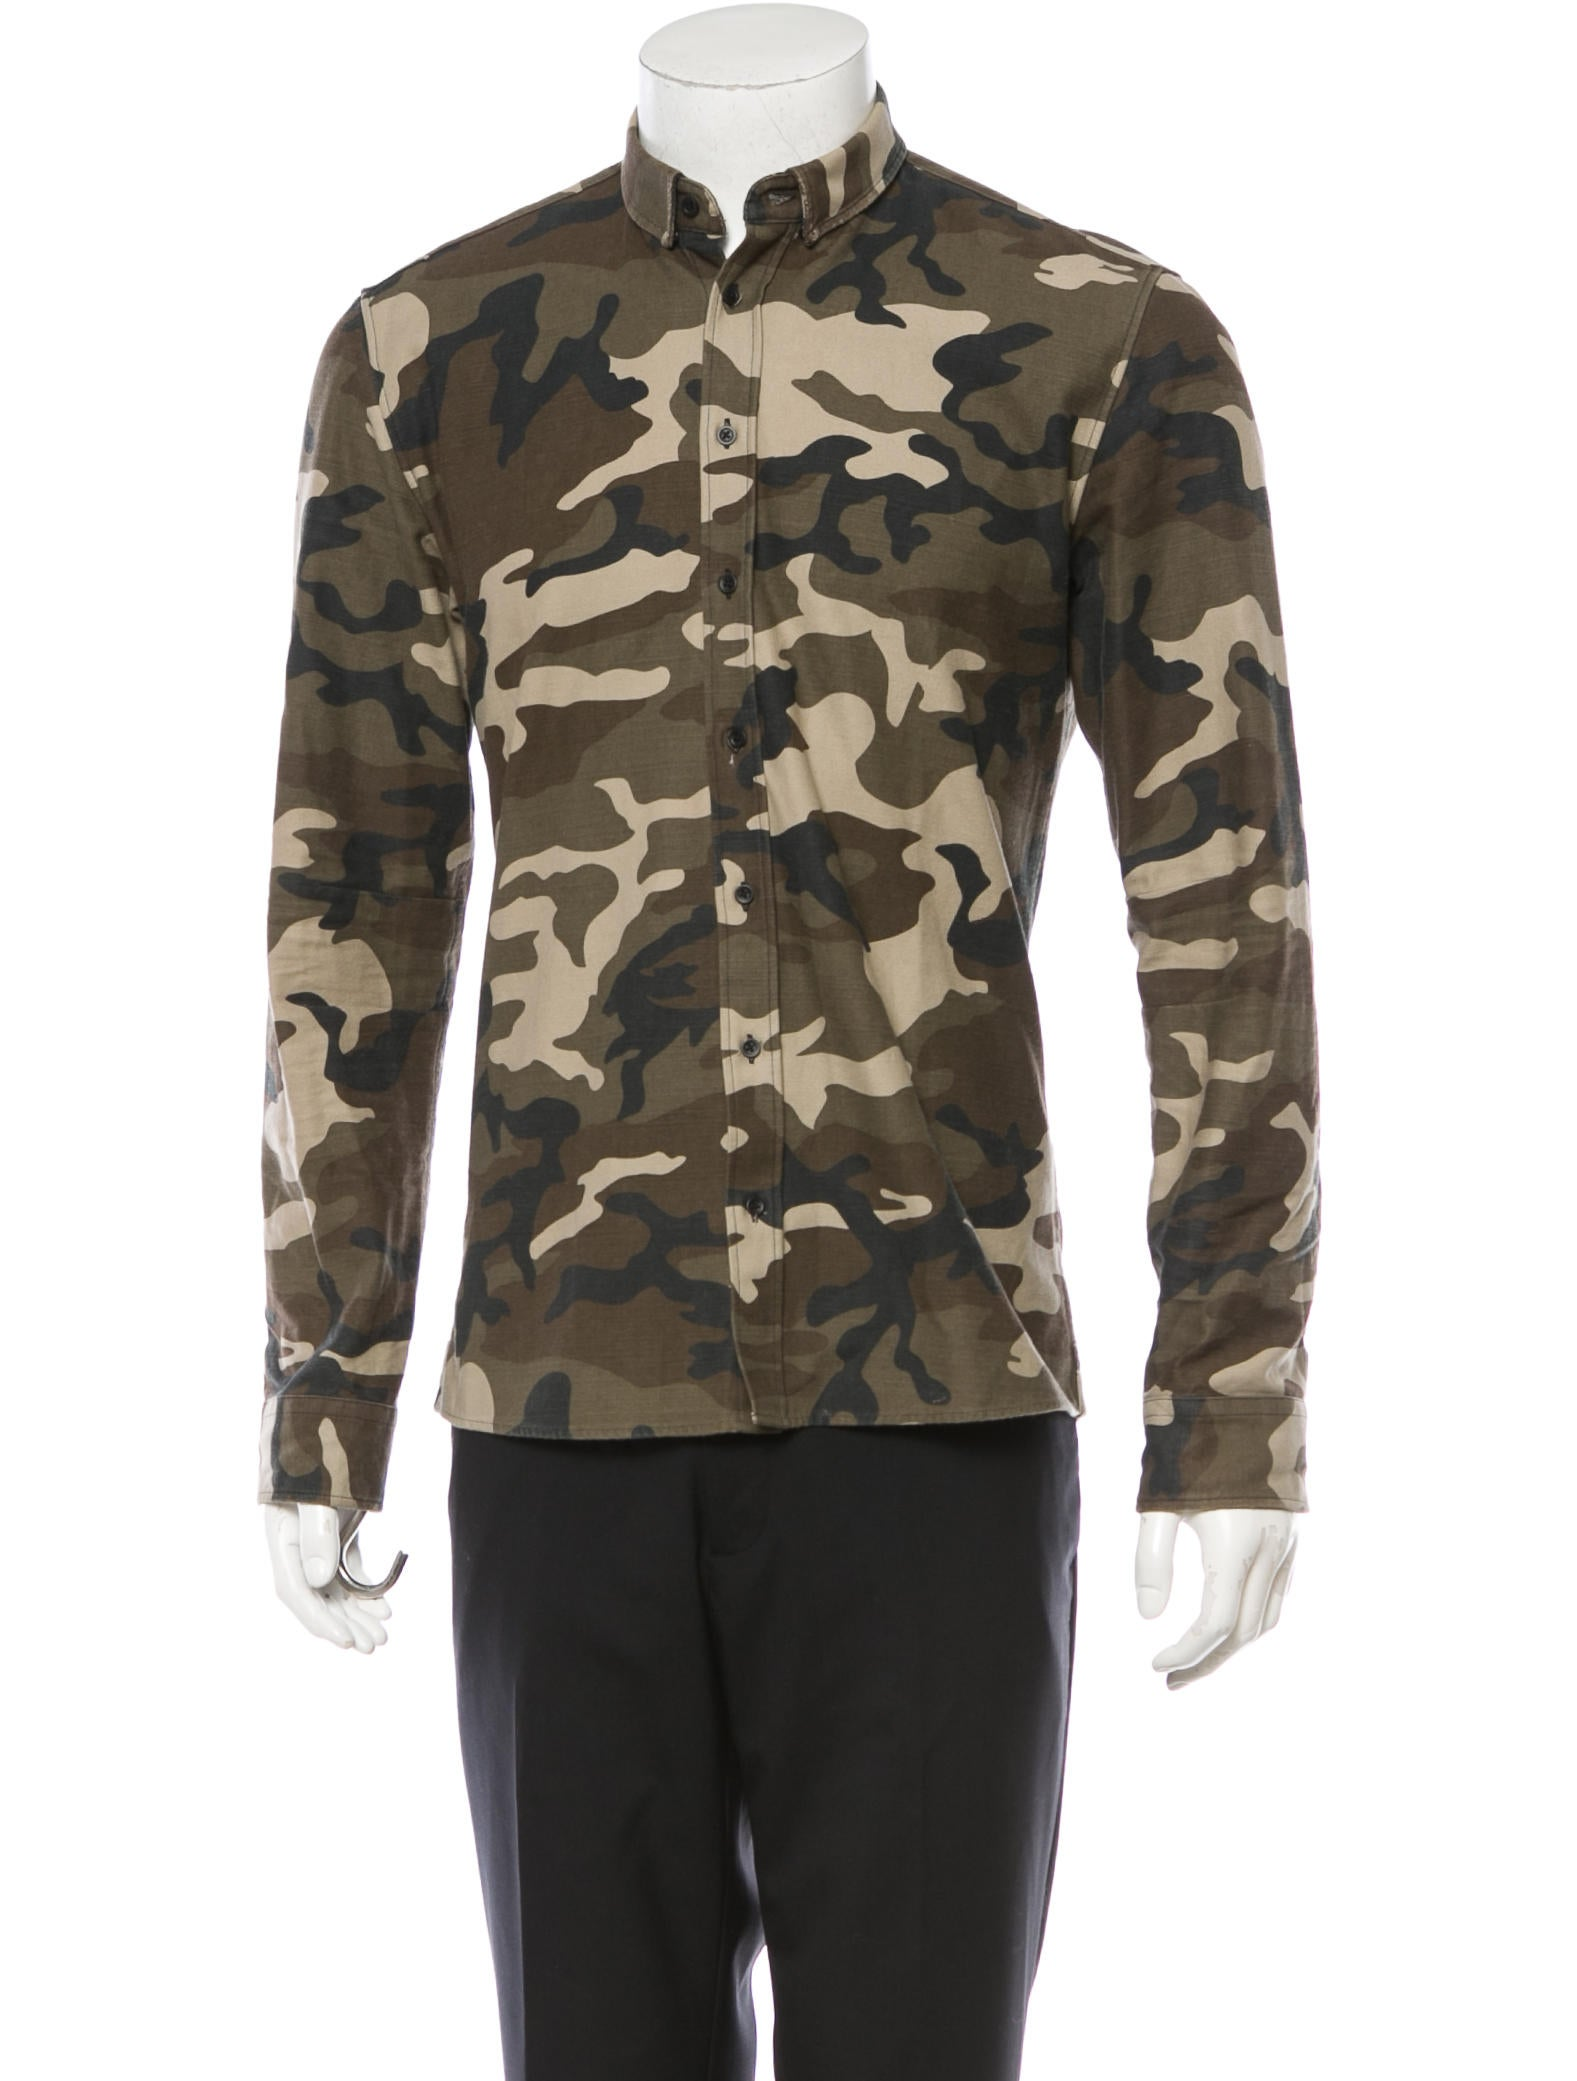 Balmain Camouflage Button Up Shirt Clothing Bam21491